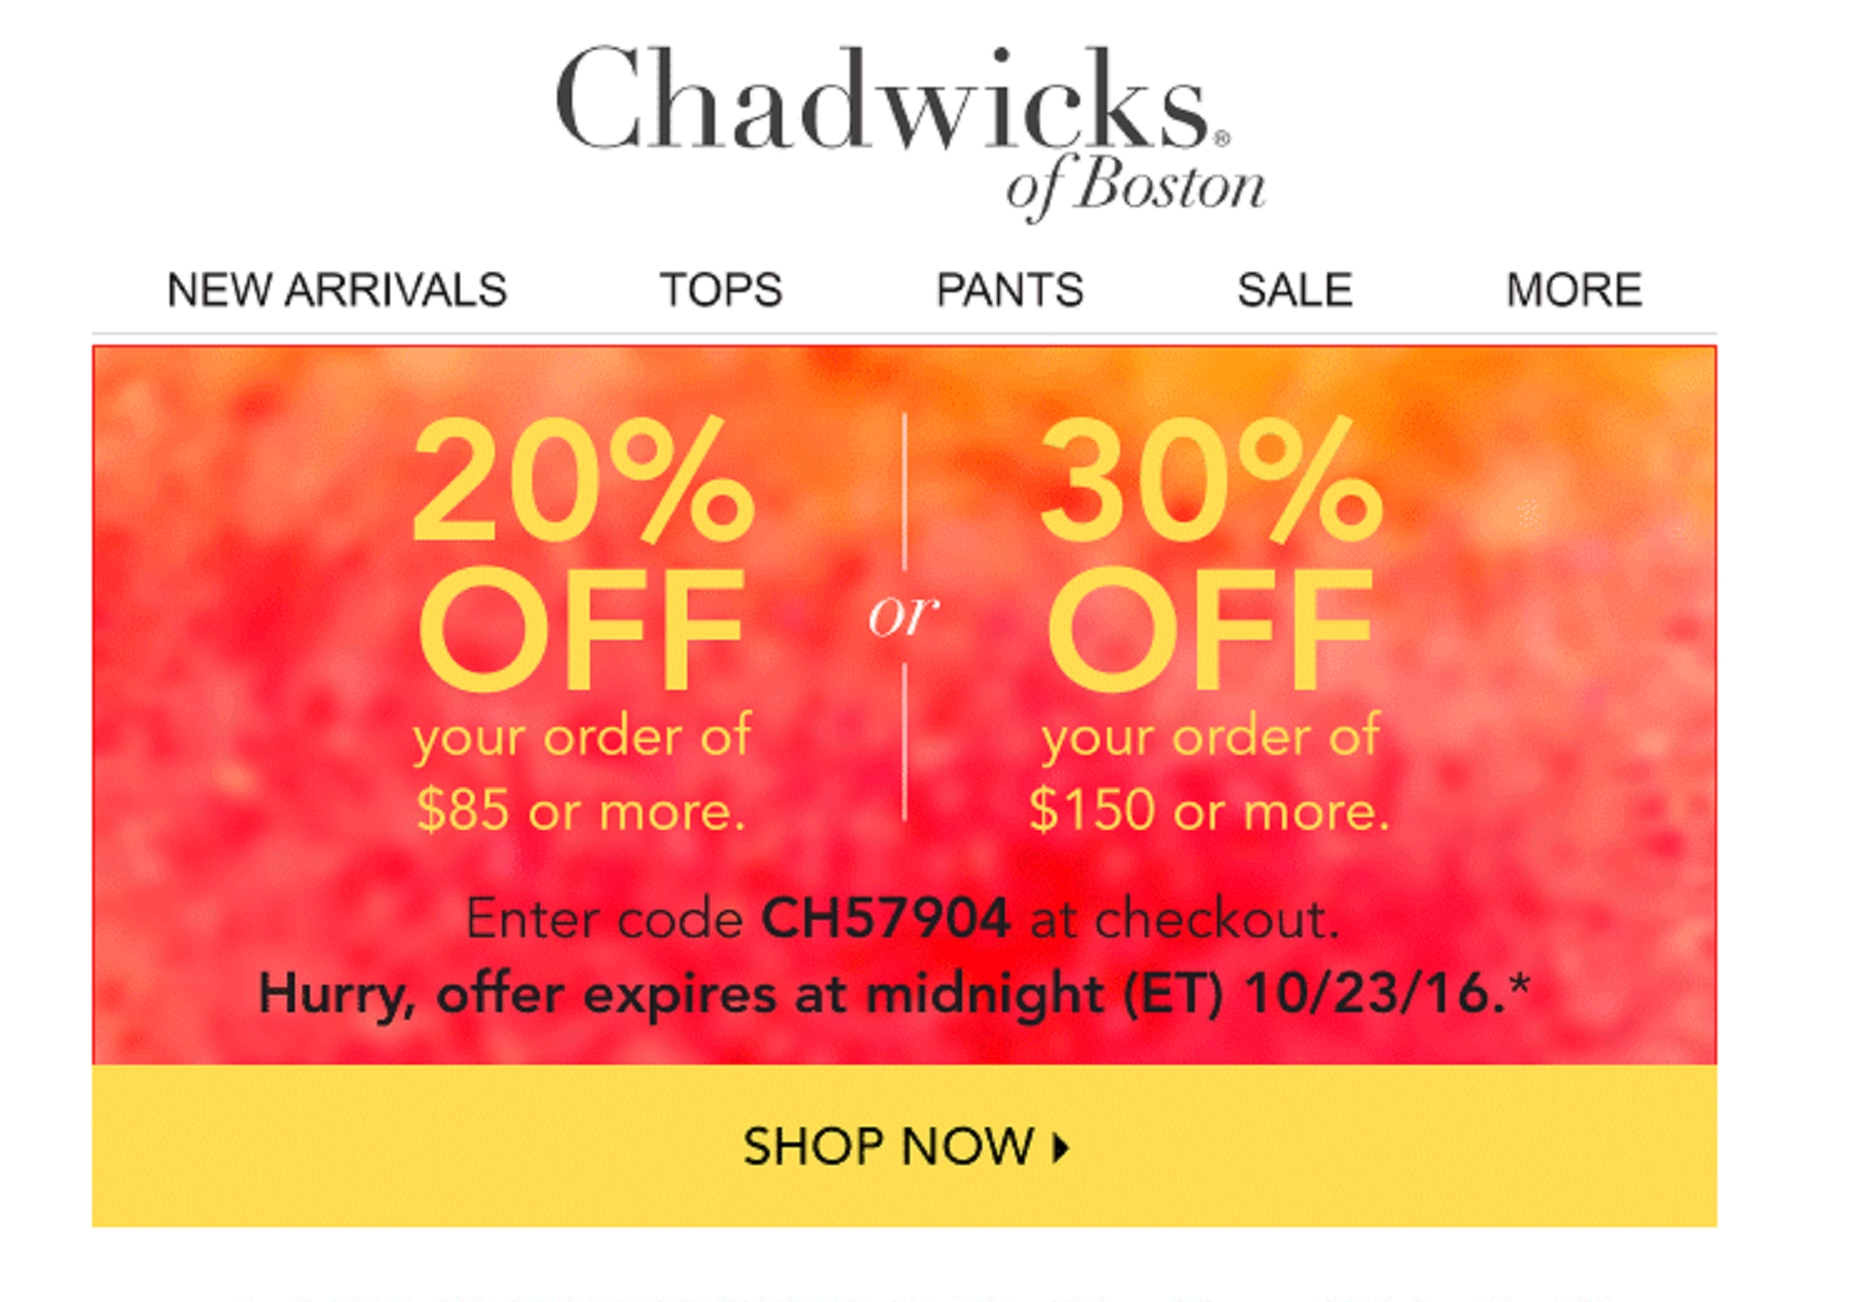 Chadwicks discount coupon code